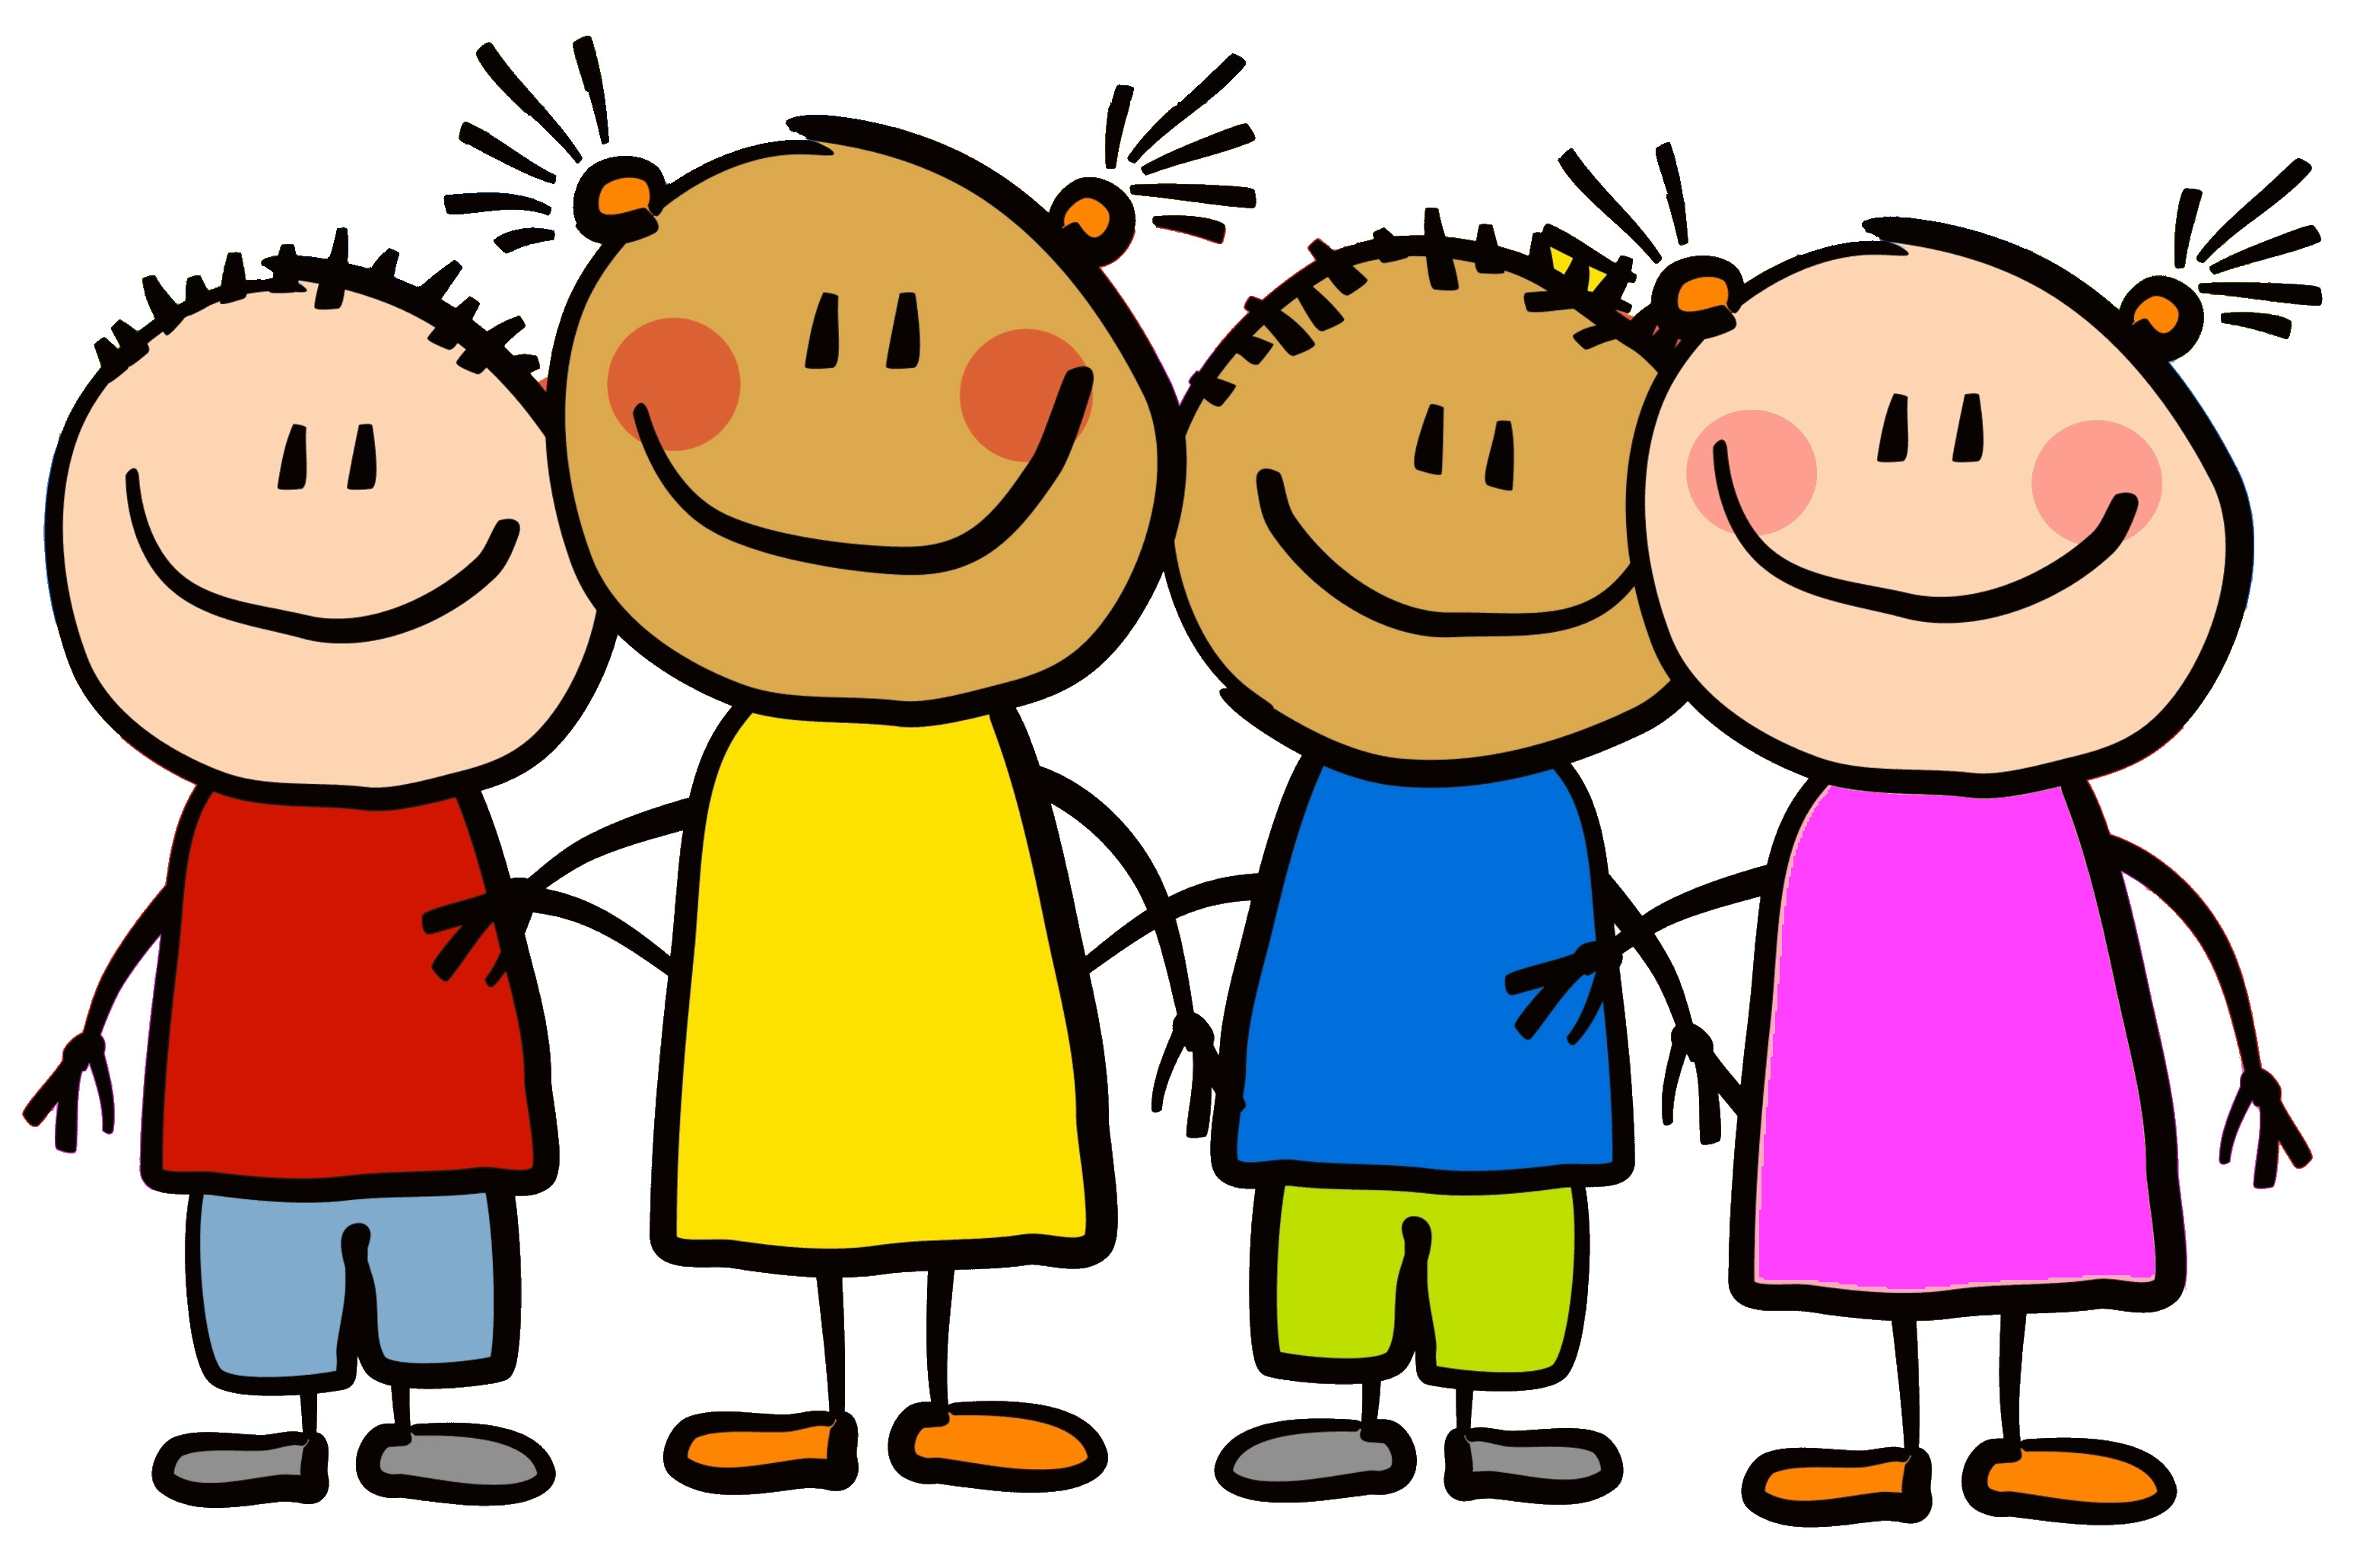 Clip Art, Pictures and Stock Photos - Clipart Guide Clipart pictures of kids